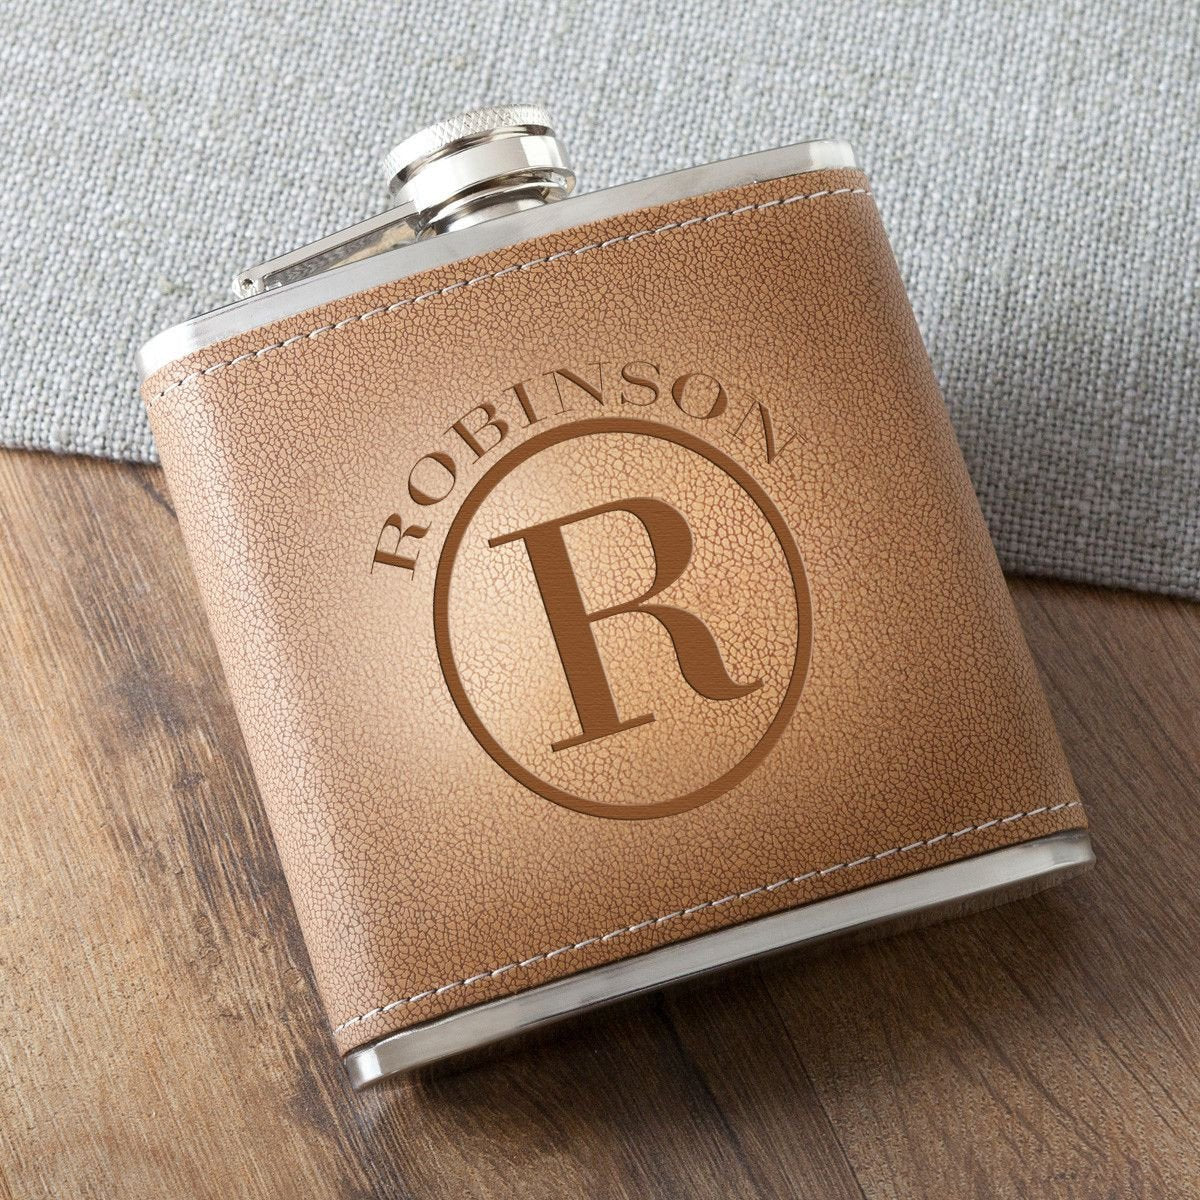 Personalized Flasks - Durango - Leather - Groomsmen Gifts - 6 oz.